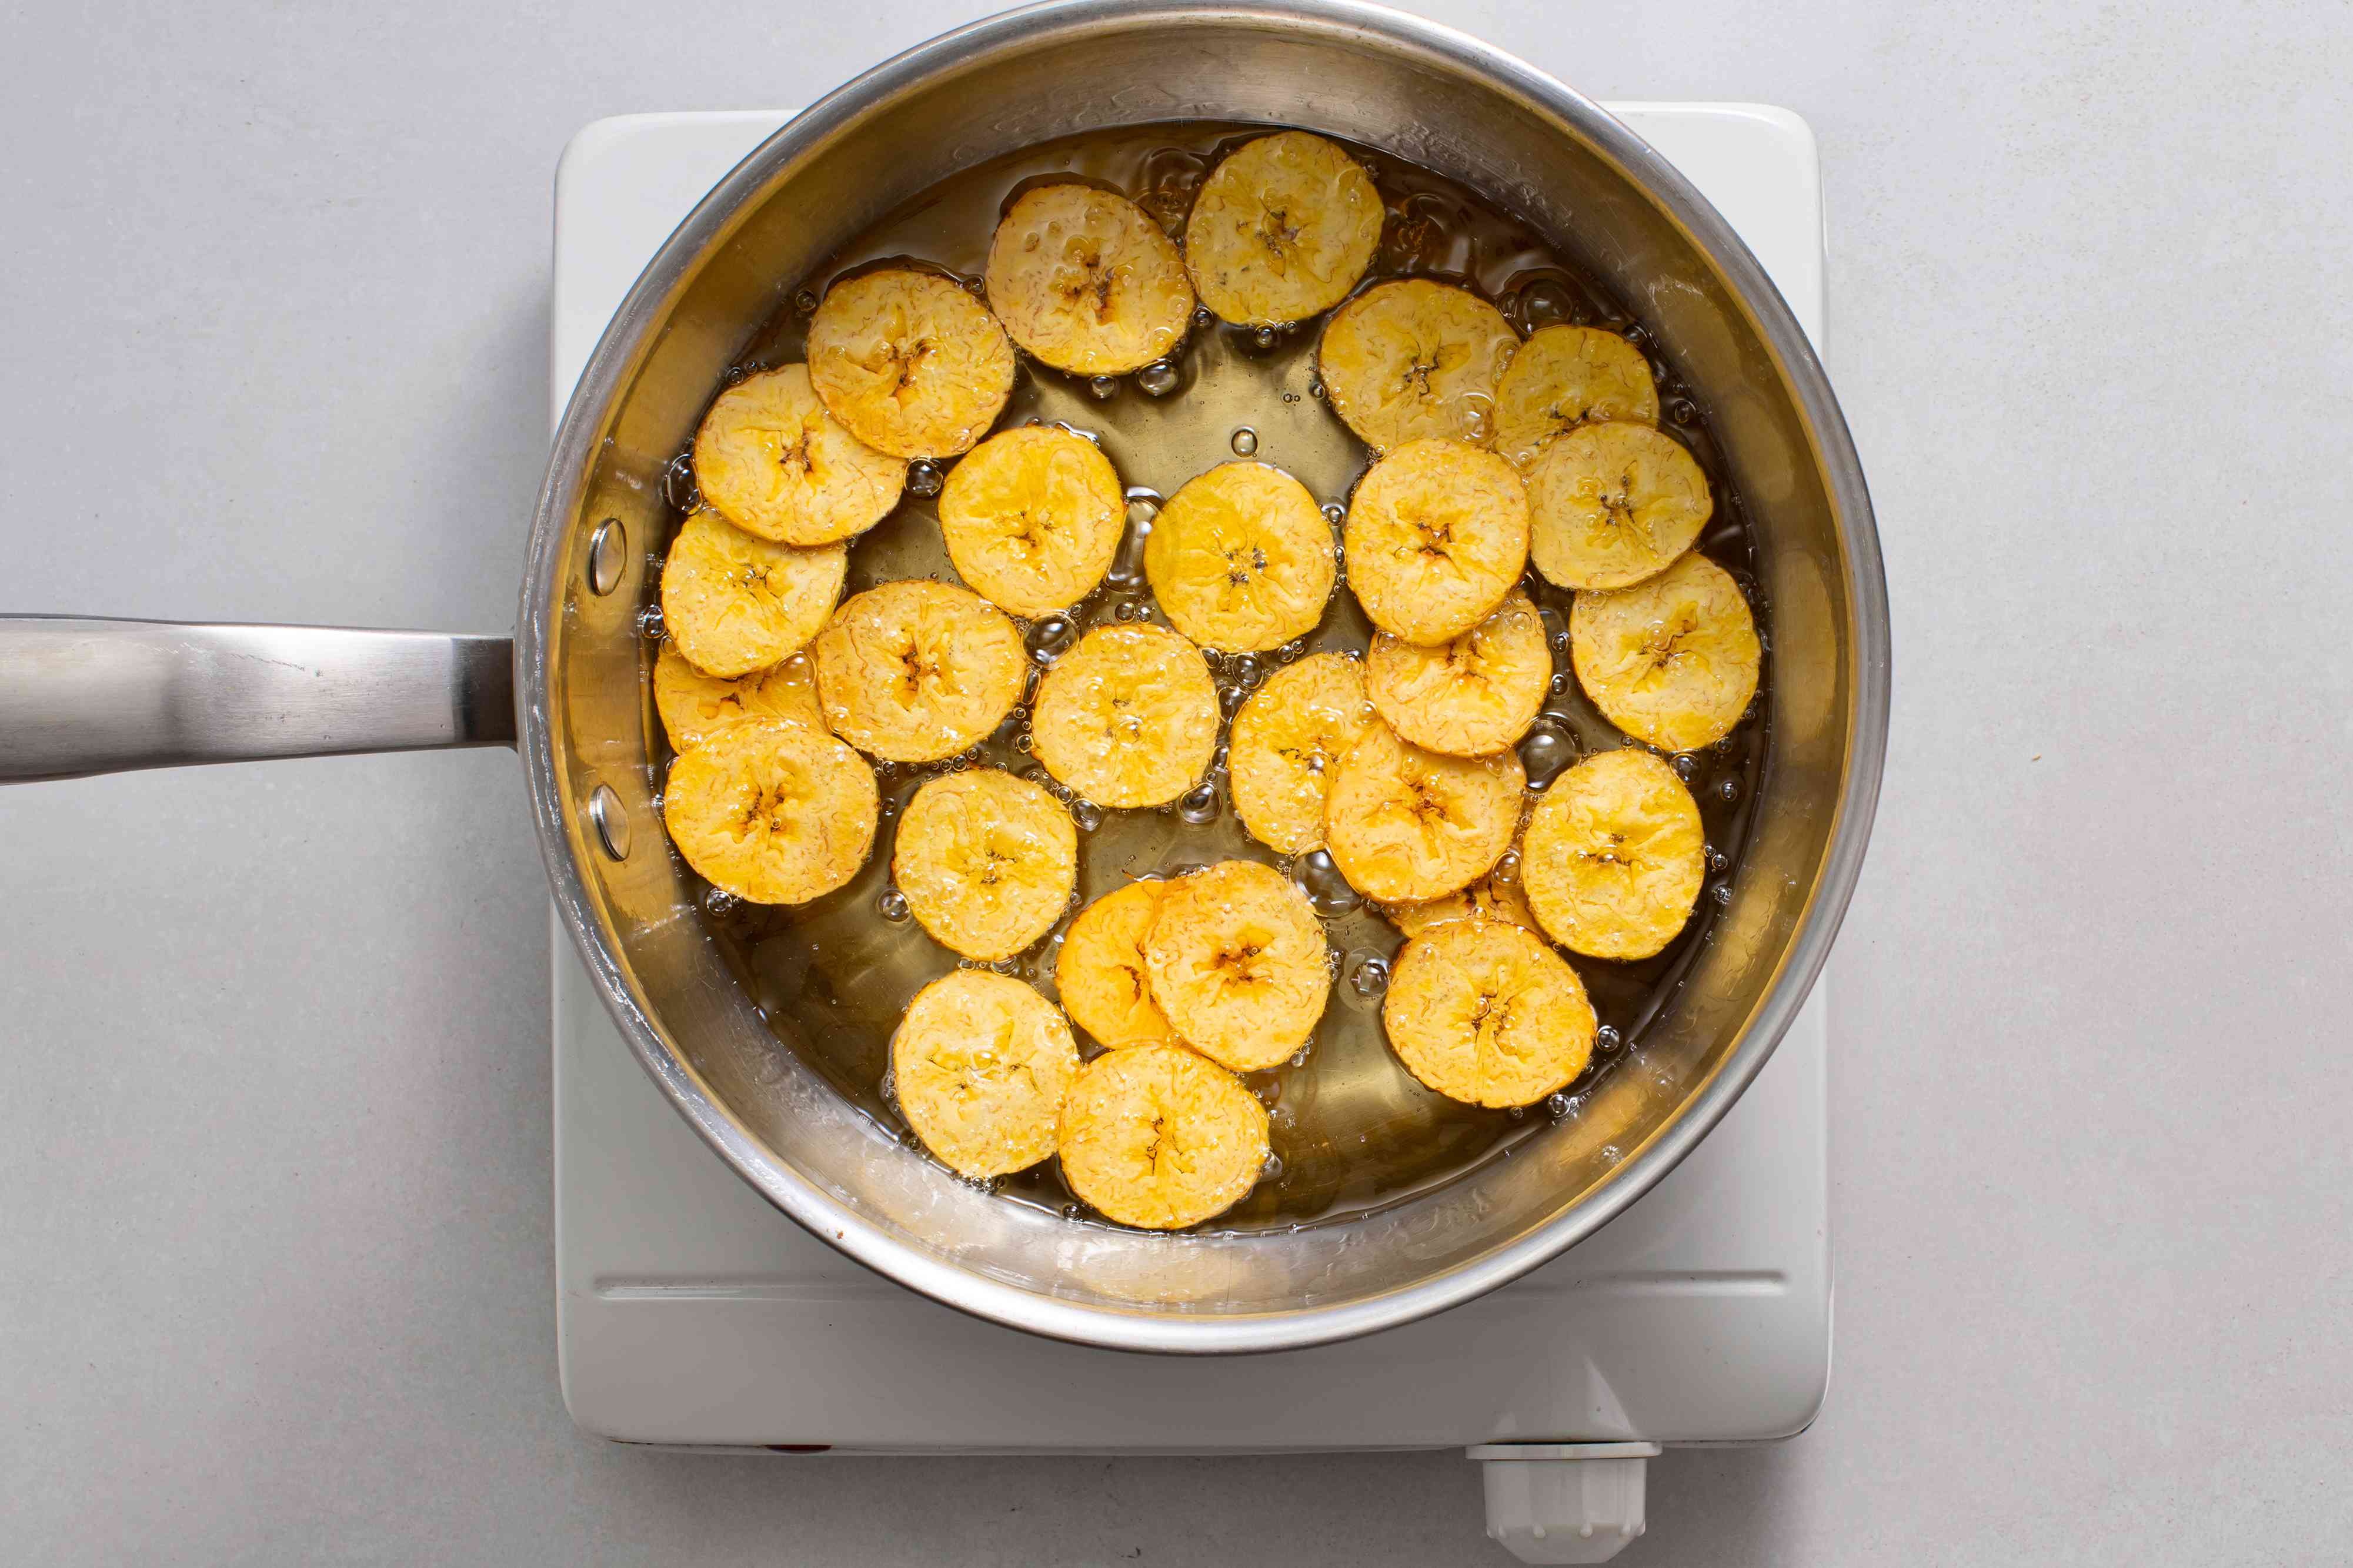 plantain slices frying in a pot of oil